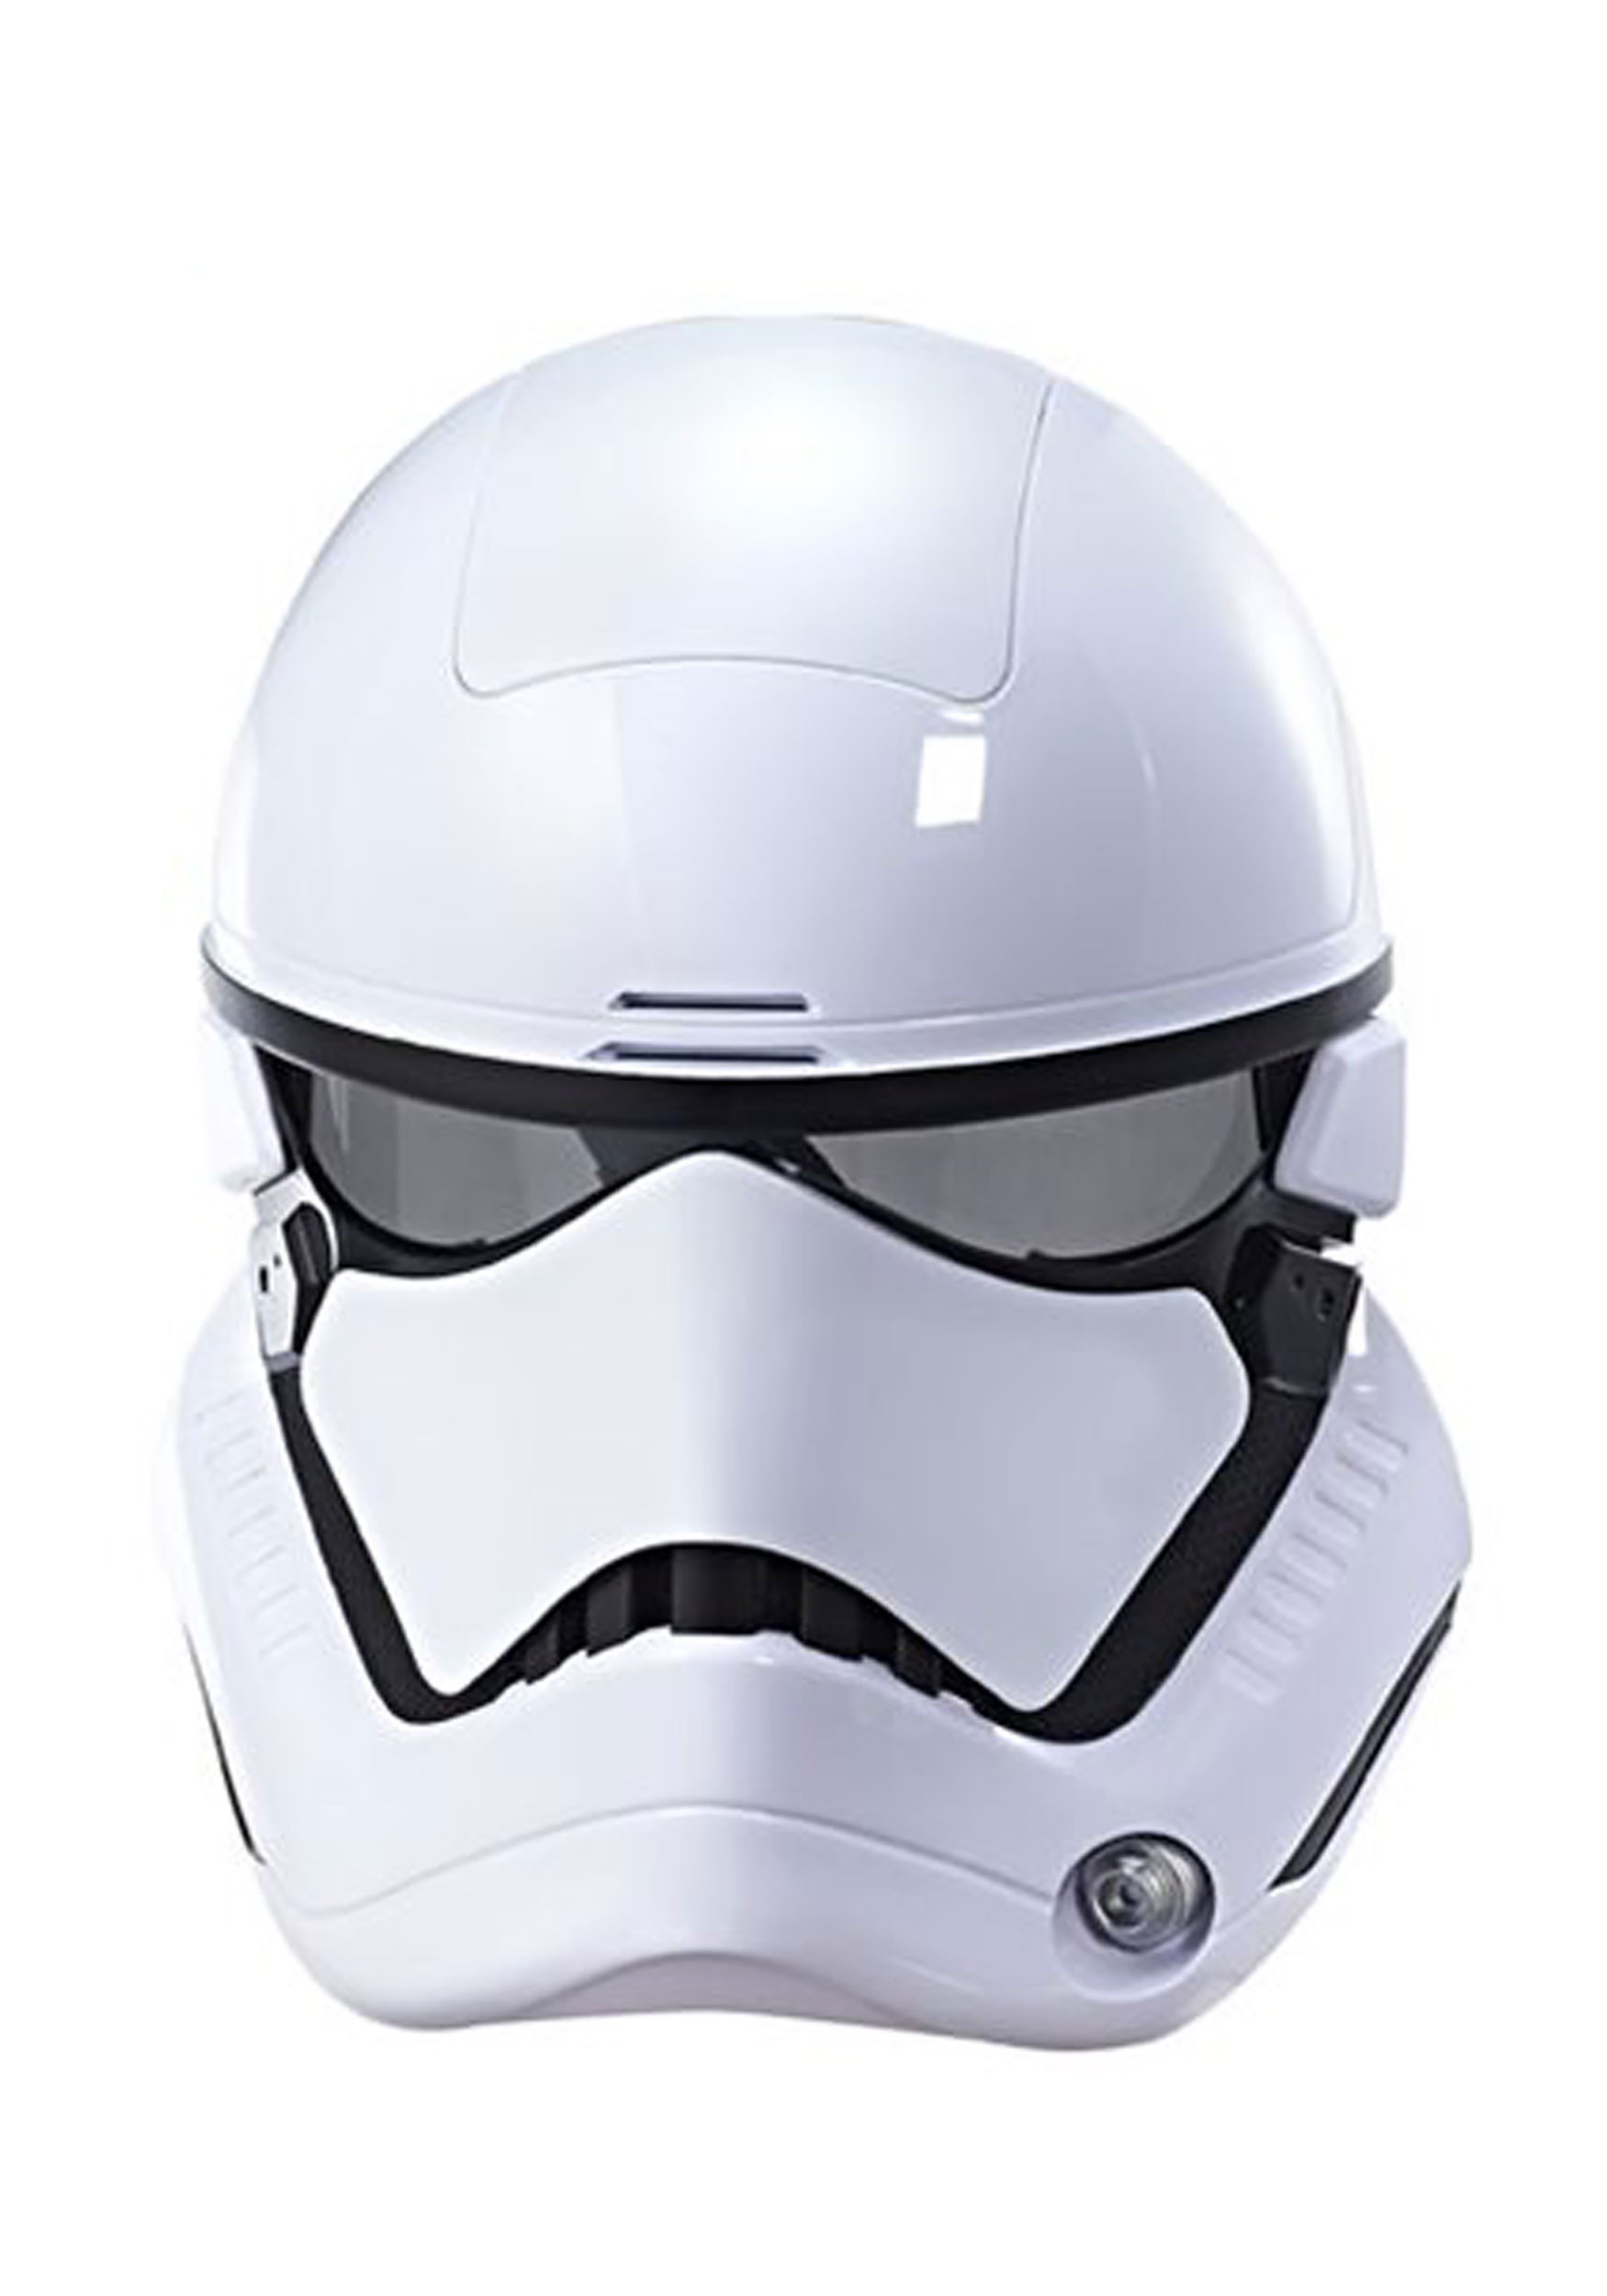 INOpets.com Anything for Pets Parents & Their Pets Star Wars: The Last Jedi Stormtrooper Electronic Mask